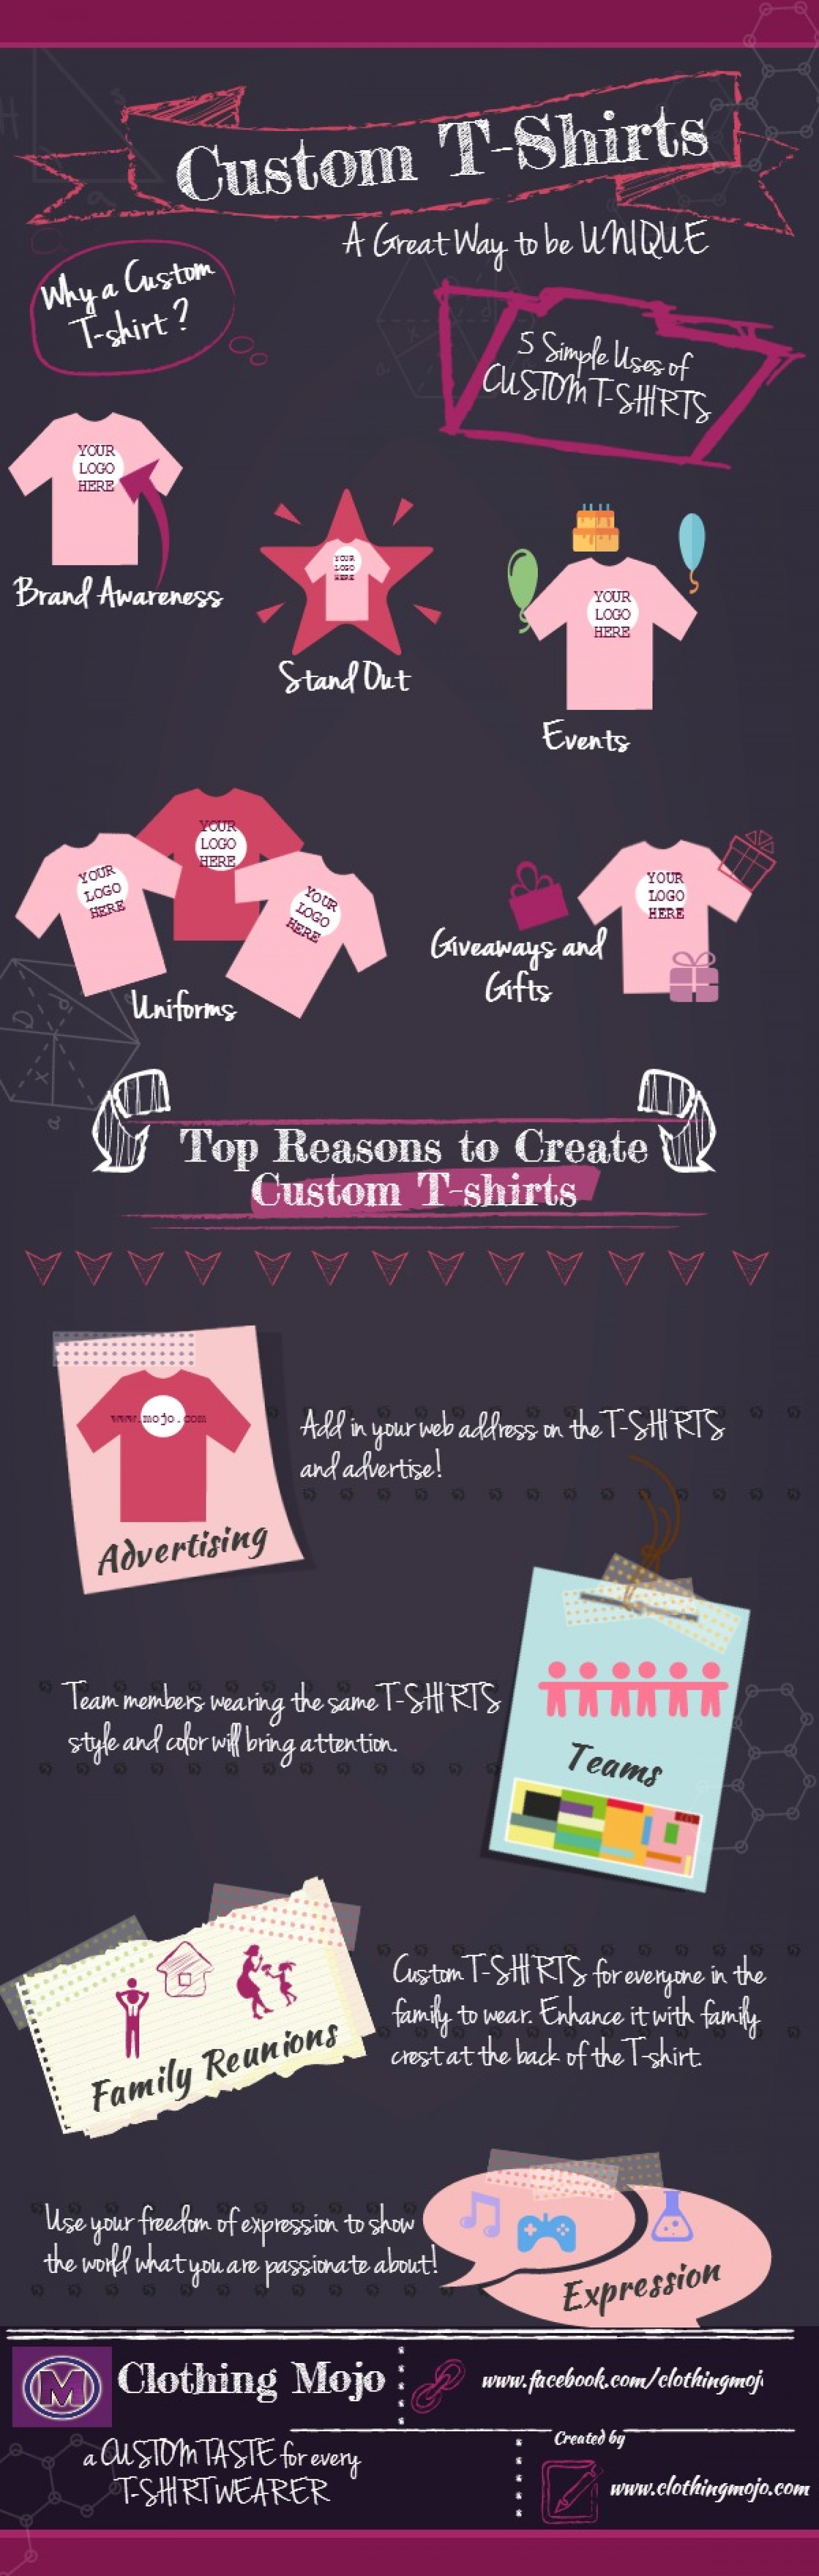 Cuttom T-Shirts Infographic